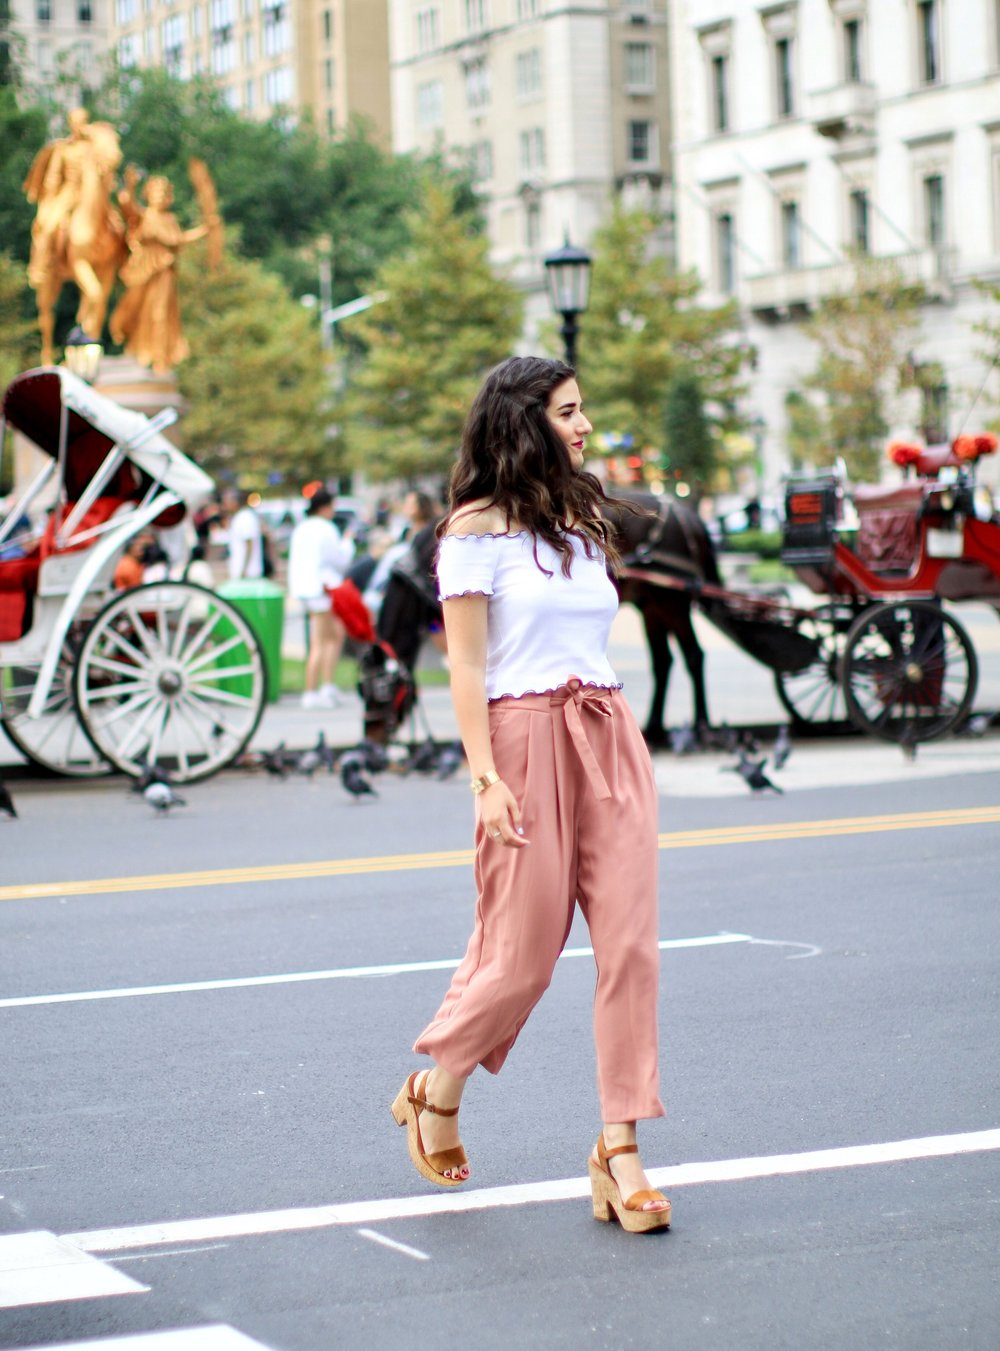 Pink Palazzo Pants + Ruffled Crop Top The Shockingly Hardest Thing About Planning A Wedding Esther Santer Fashion Blog NYC Street Style Blogger Outfit OOTD Trendy Crop Top Ruffles Trousers Shoes Wedges Dolce Vita Zara Feminine Henri  Bendel Jewelry.JPG